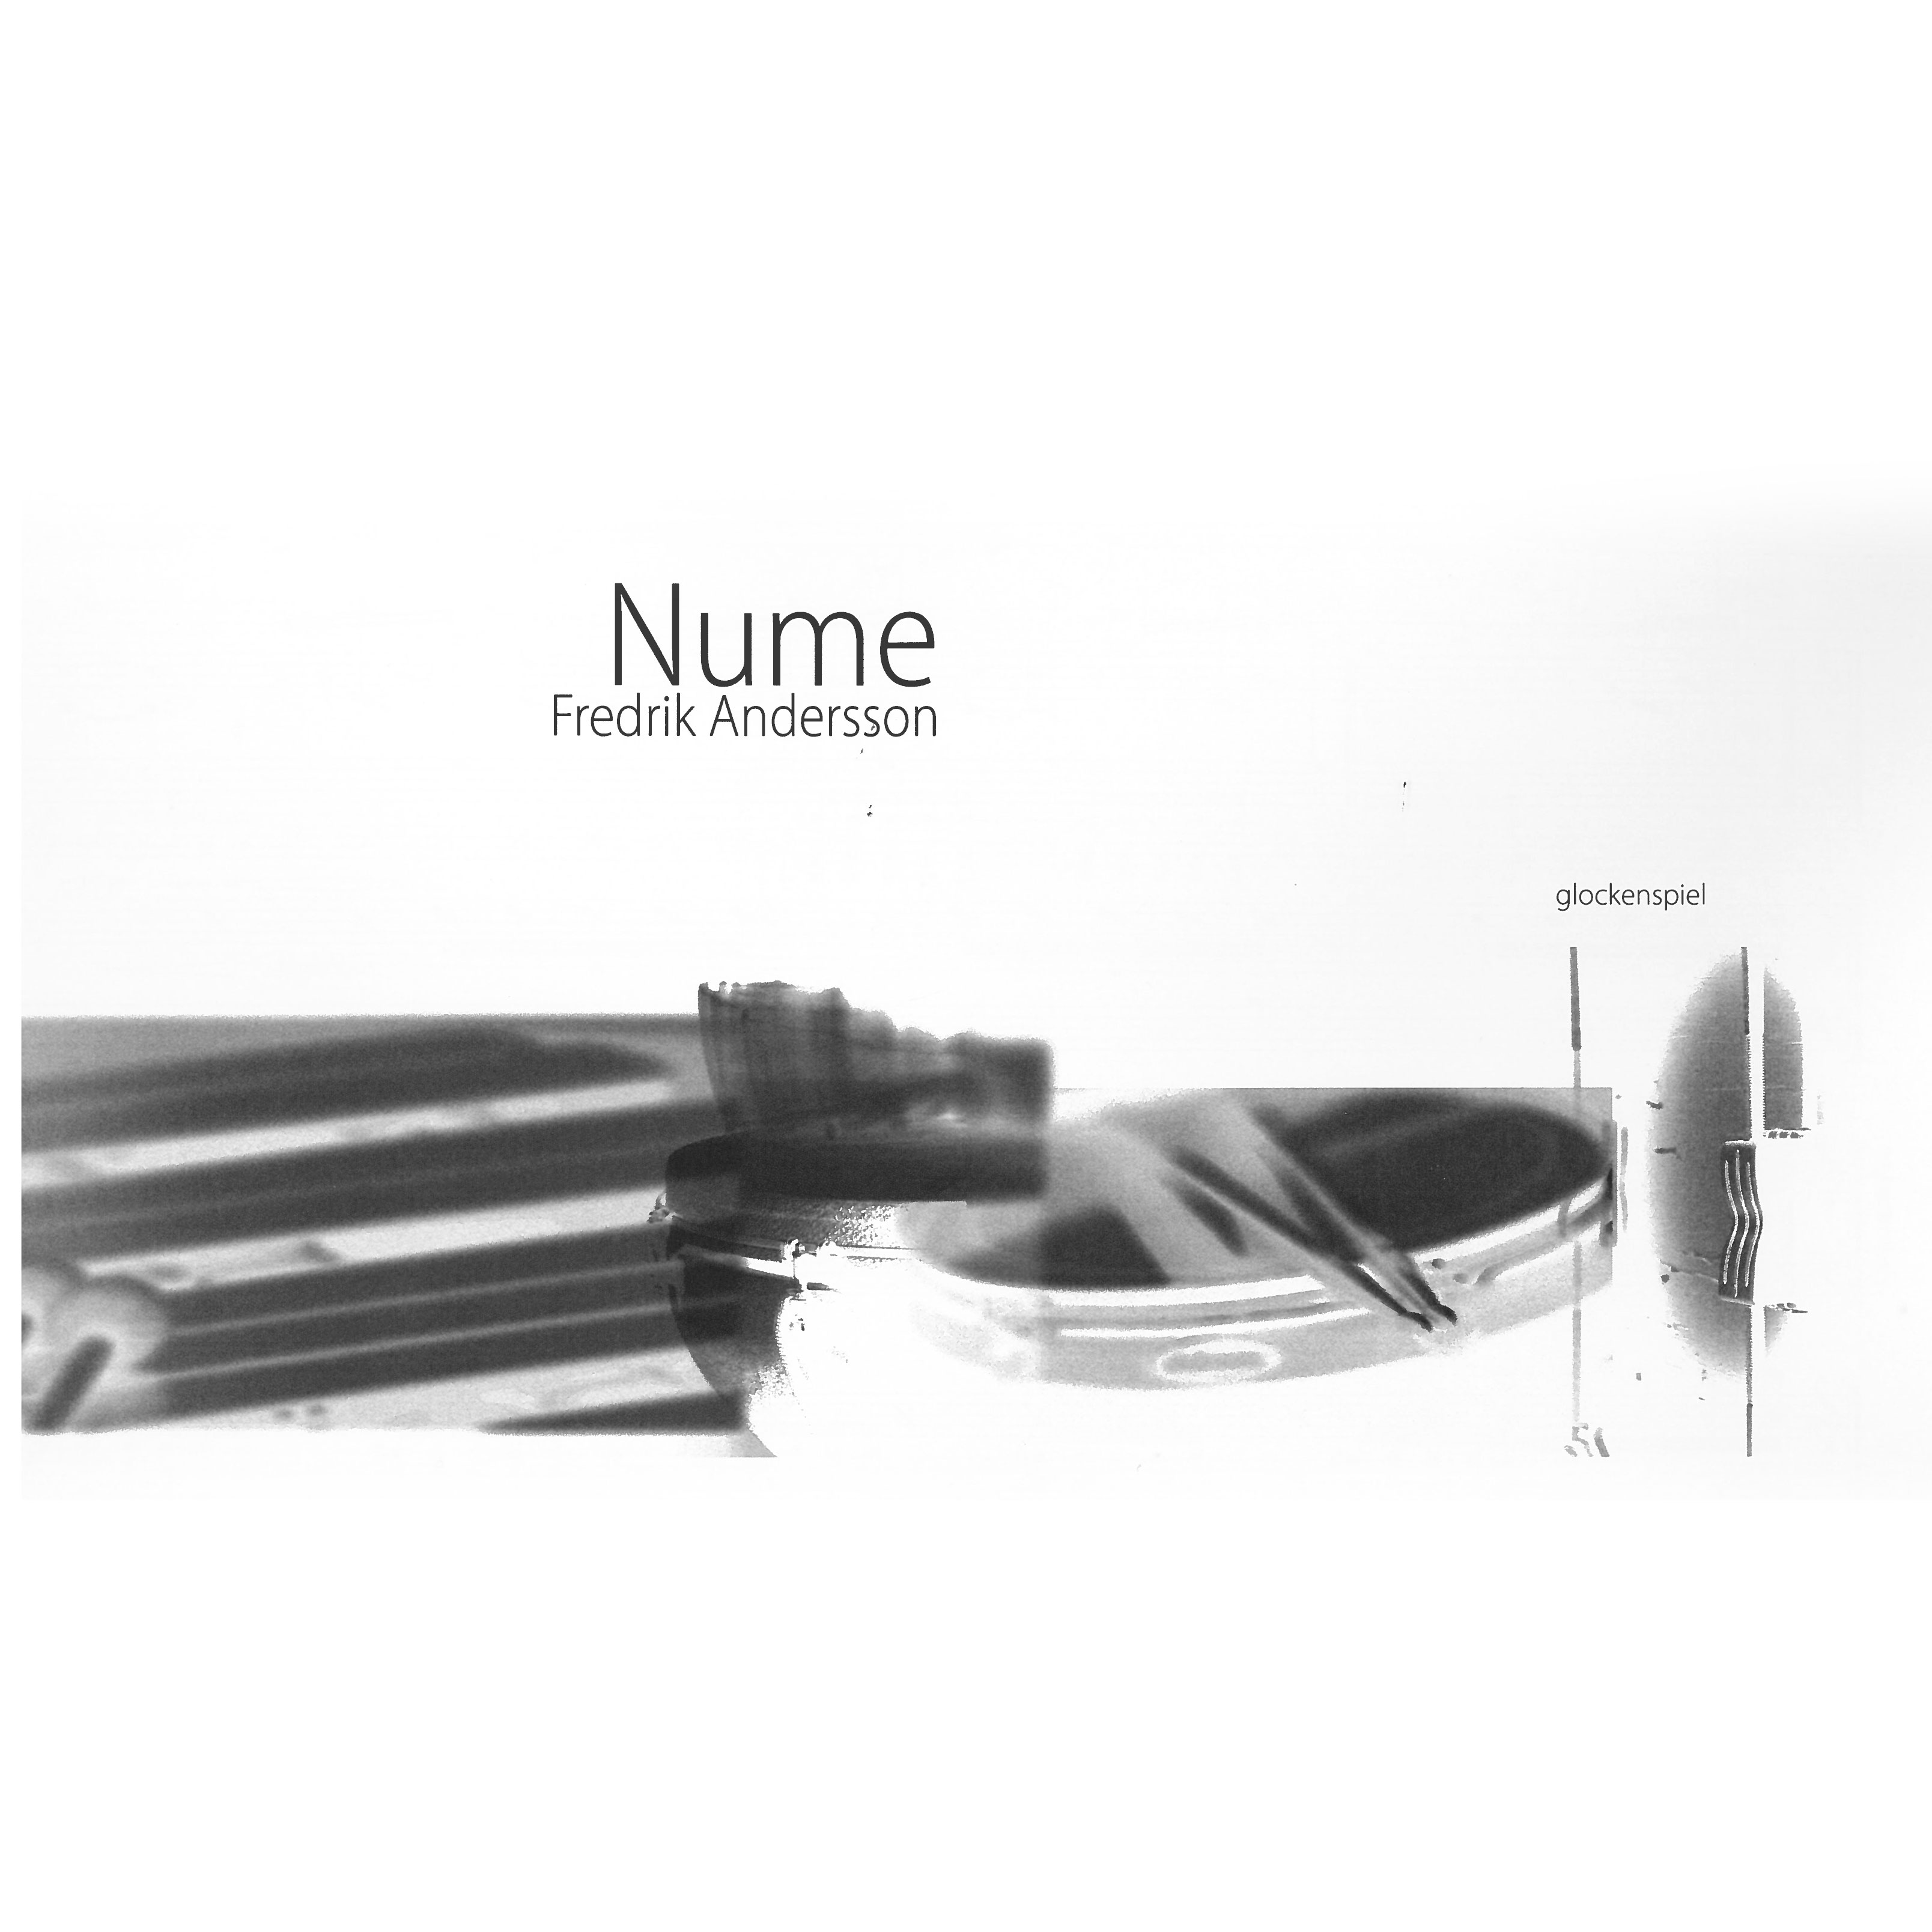 Nume by Fredrik Andersson